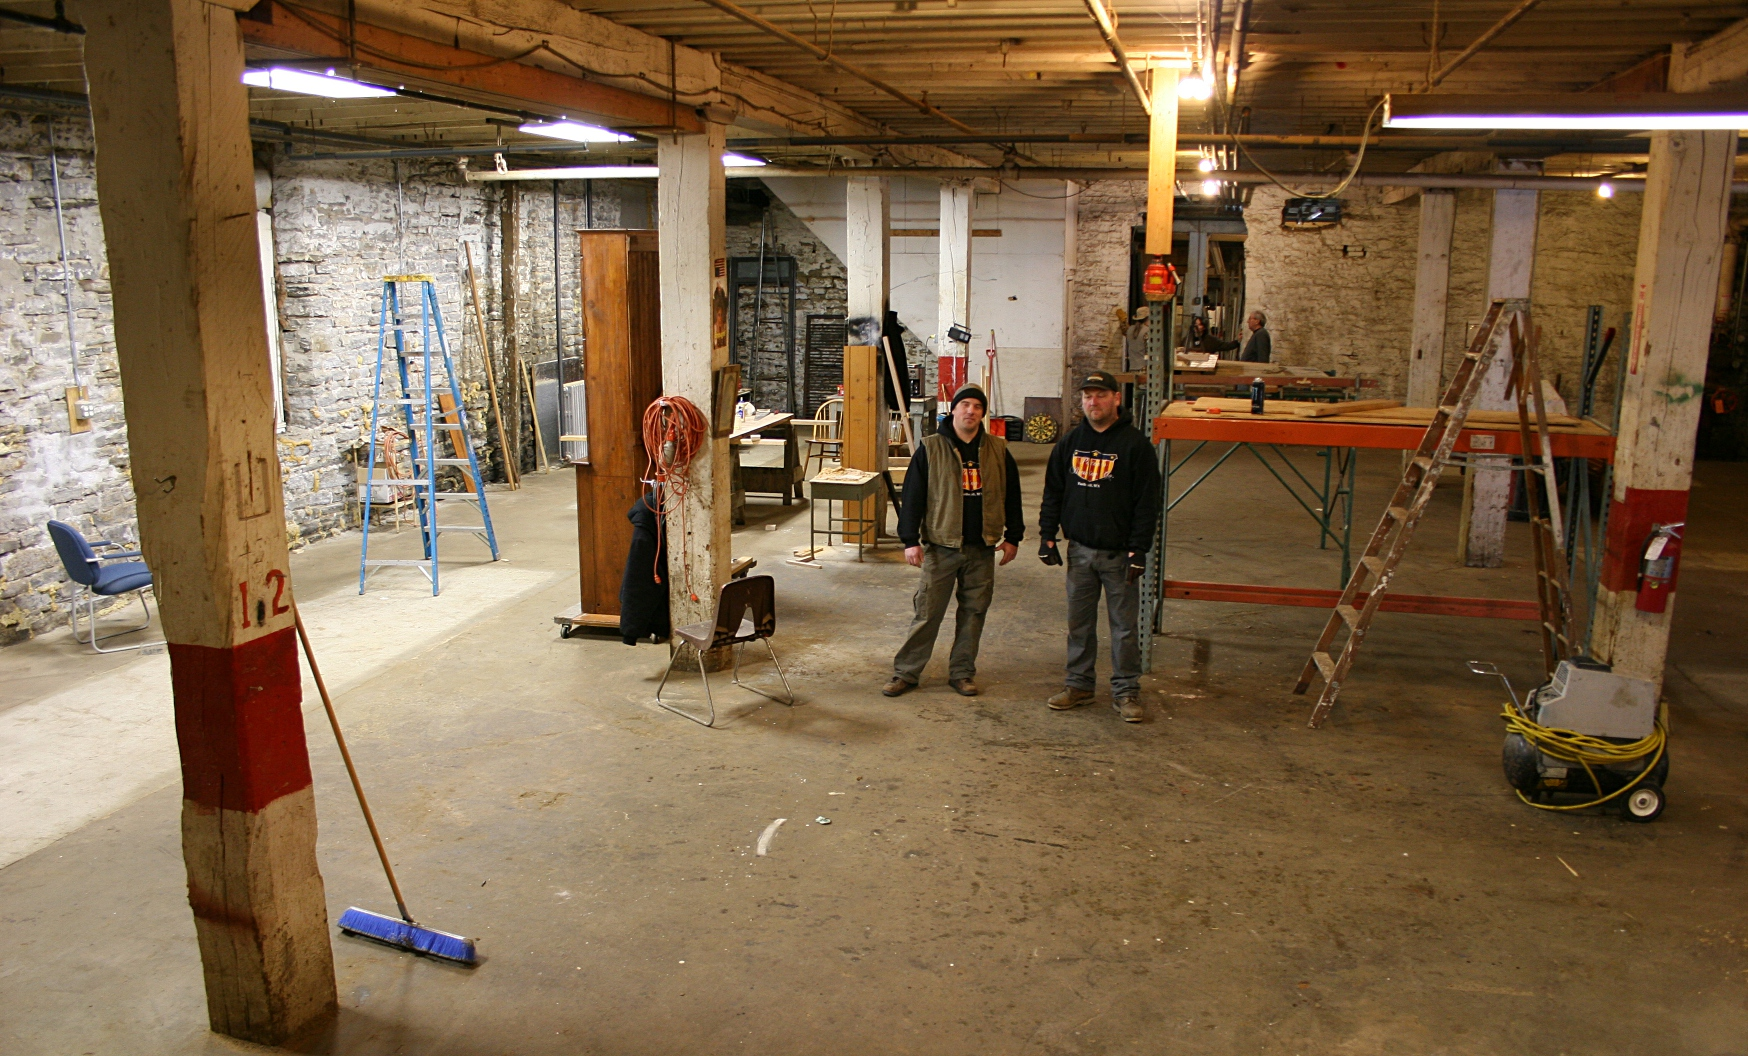 The brewery space.